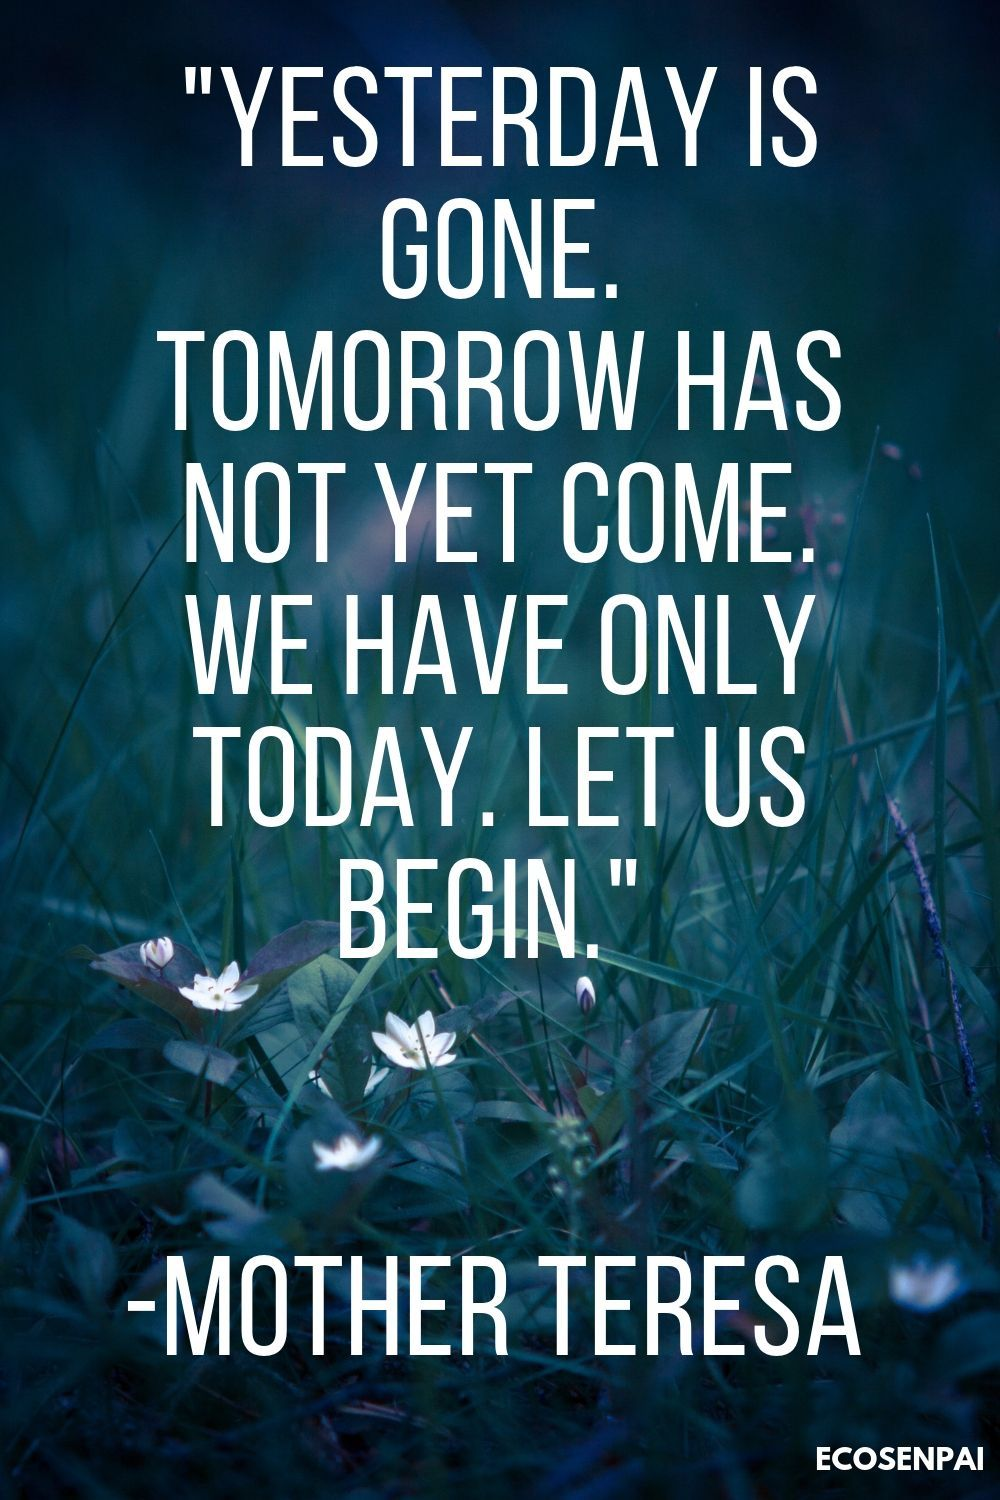 Quotes yesterday, today, tomorrow, words of life truths. Quotes